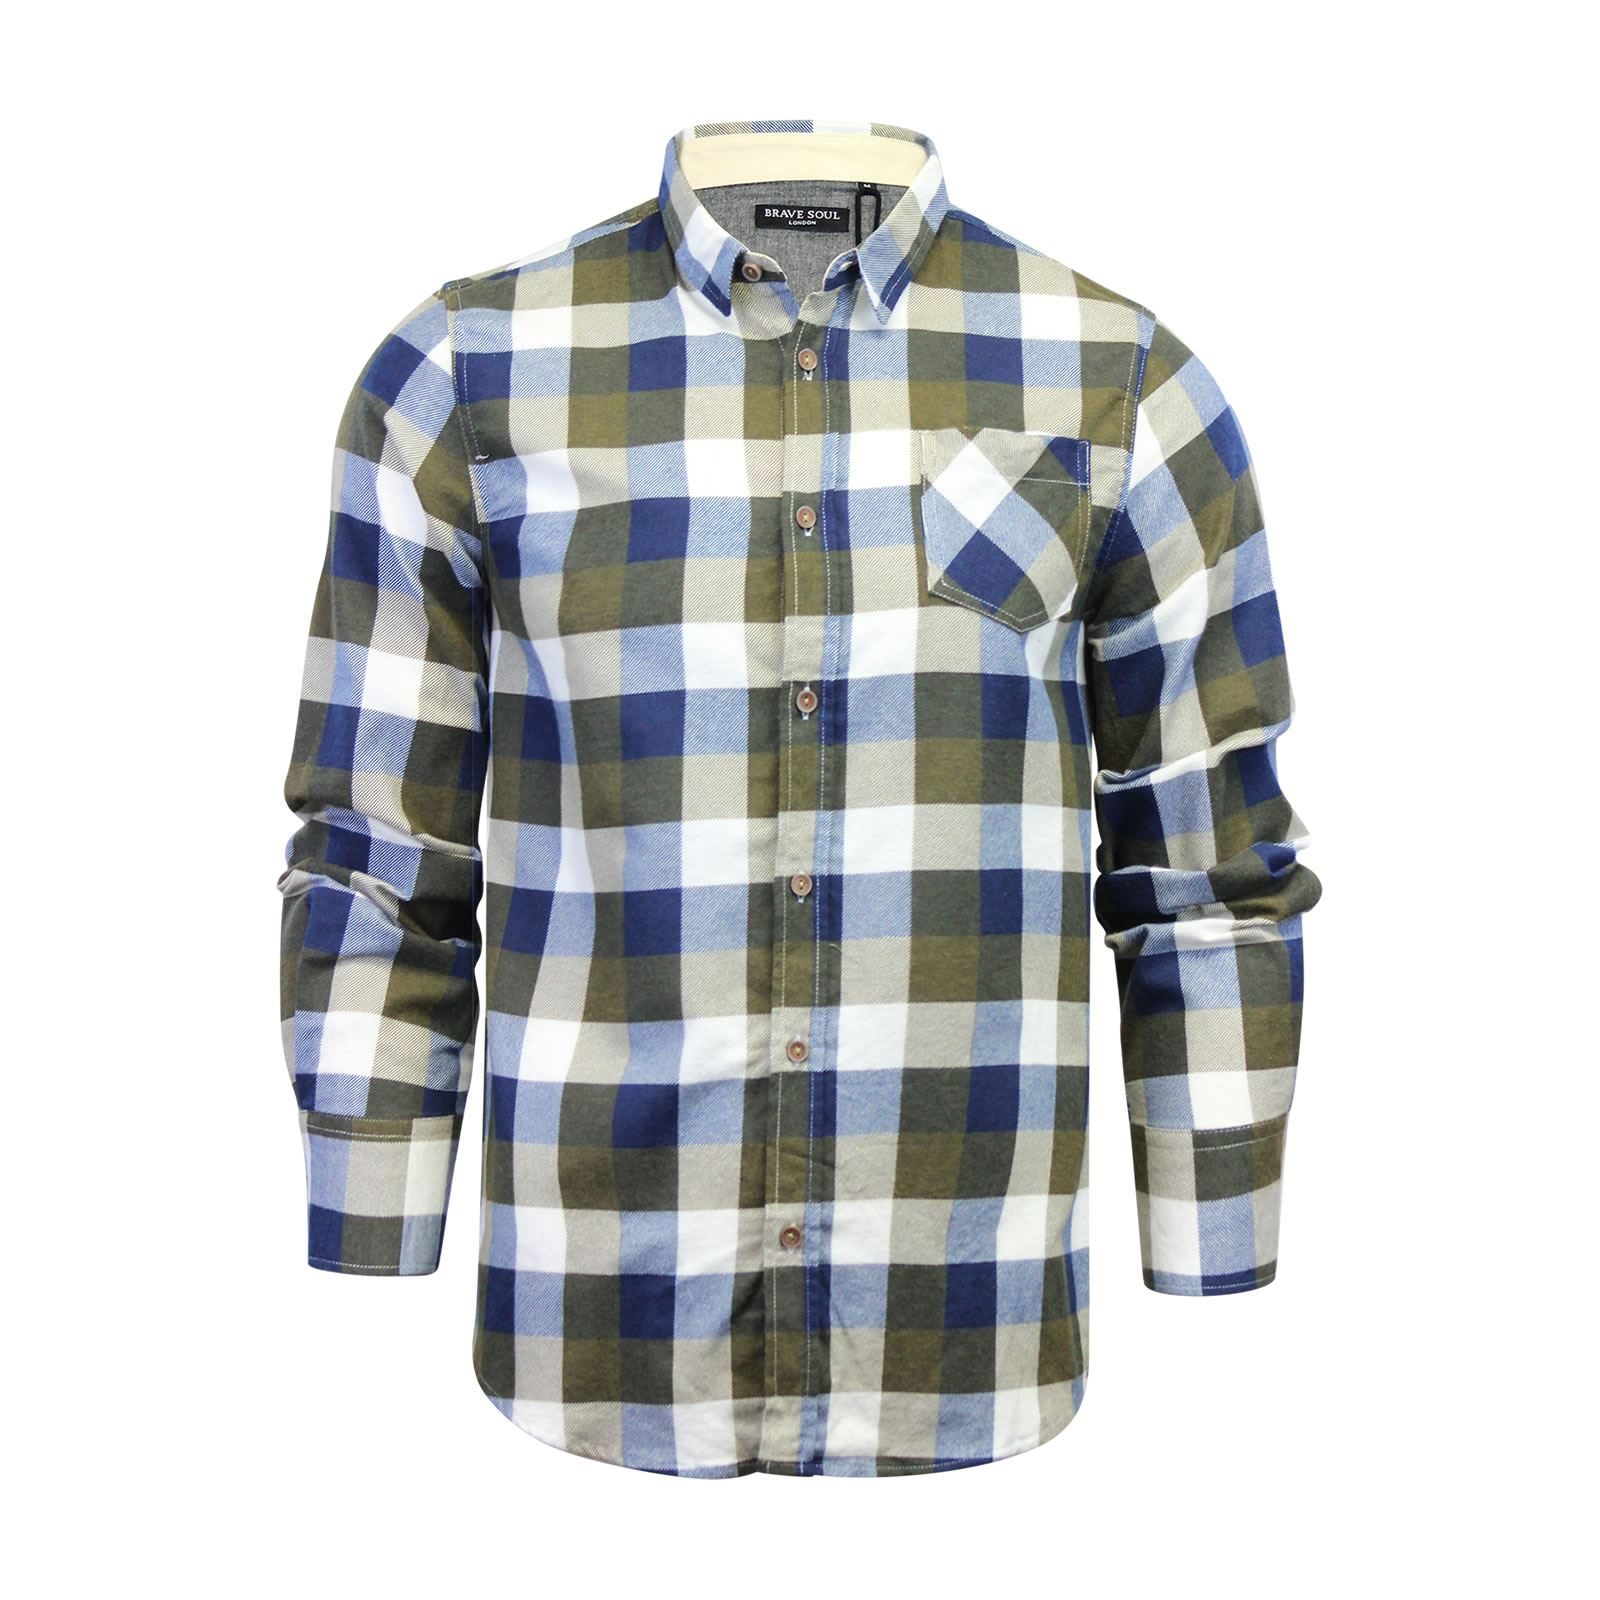 Brave-Soul-Mens-Check-Shirt-Flannel-Brushed-Cotton-Long-Sleeve-Casual-Top thumbnail 61